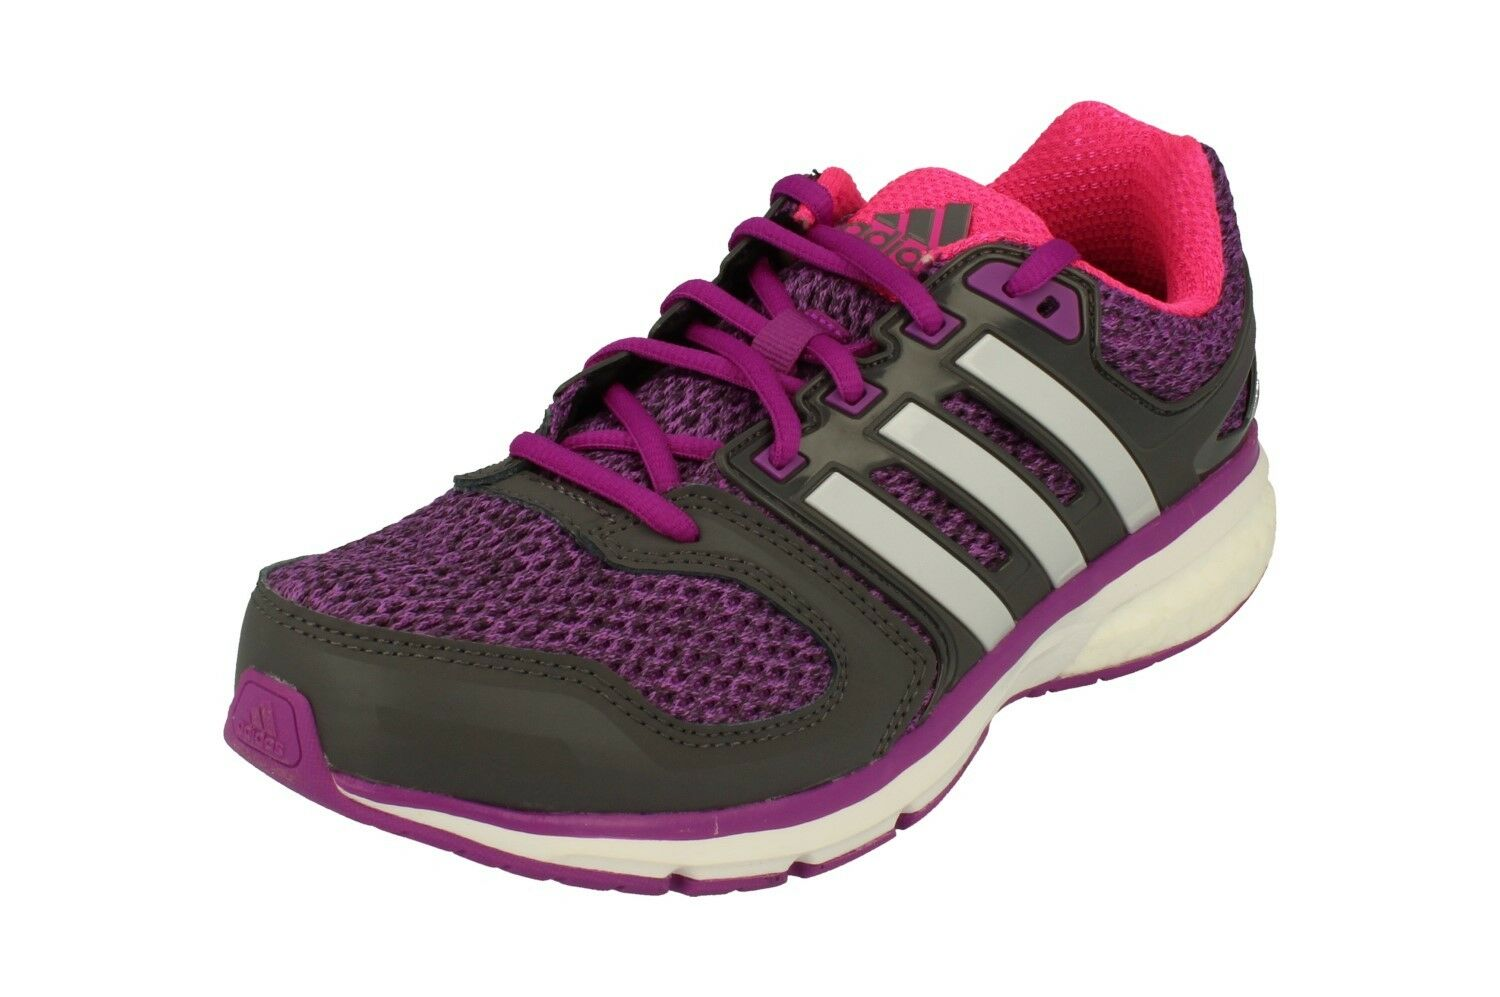 Adidas Questar BA9310 Boost Mujer Running Zapatillas Sneakers BA9310 Questar 508da5